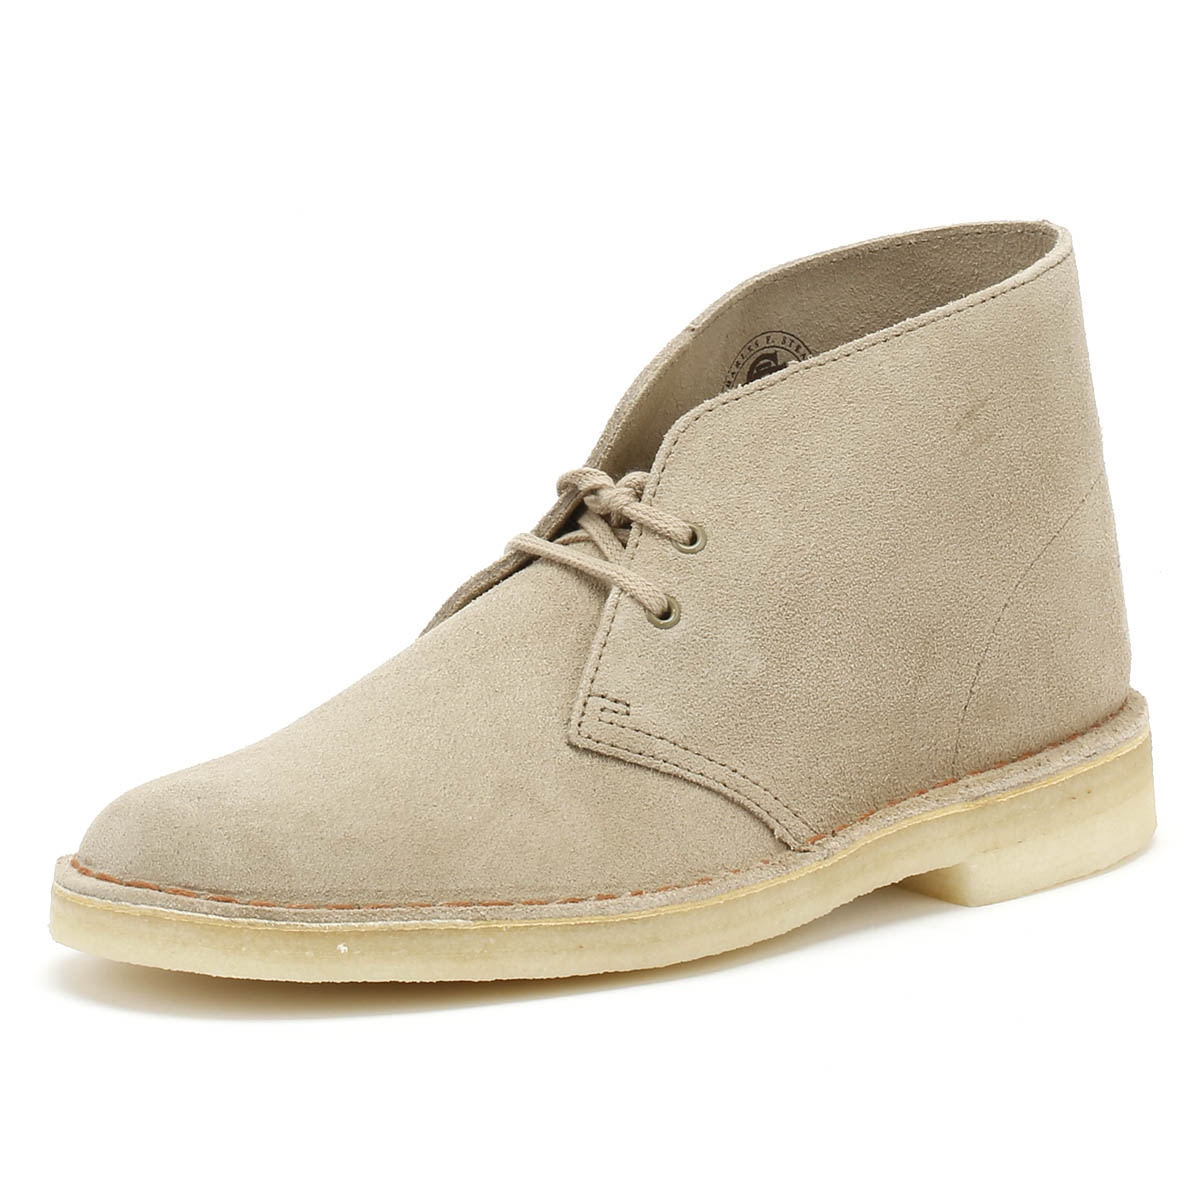 Clarks    Herren Desert Stiefel Sand Beige Suede Lace Up Casual Ankle Schuhes c4db9e